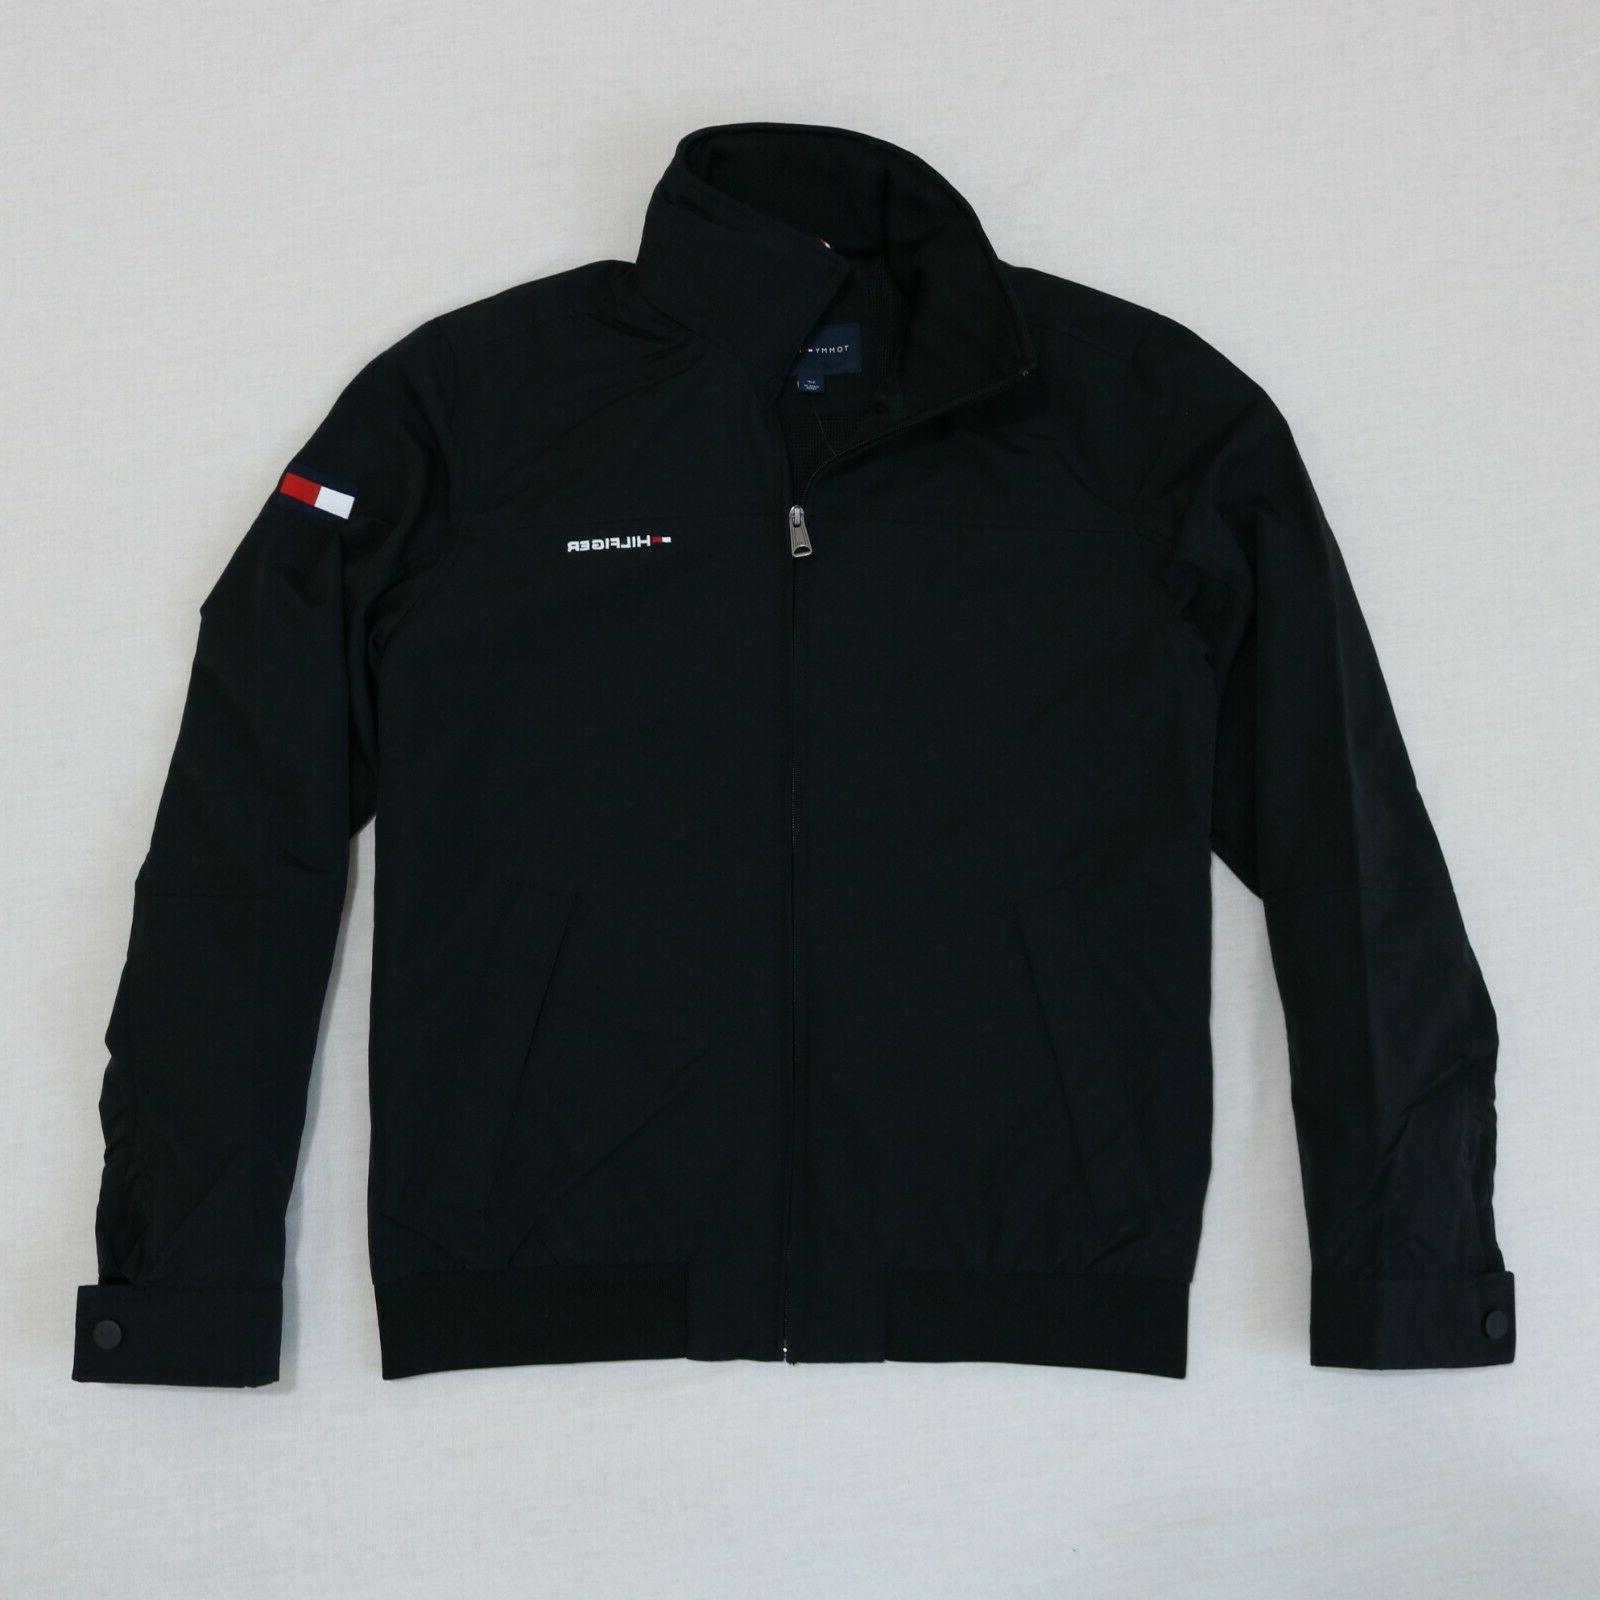 men yachting outerwear jacket size s m